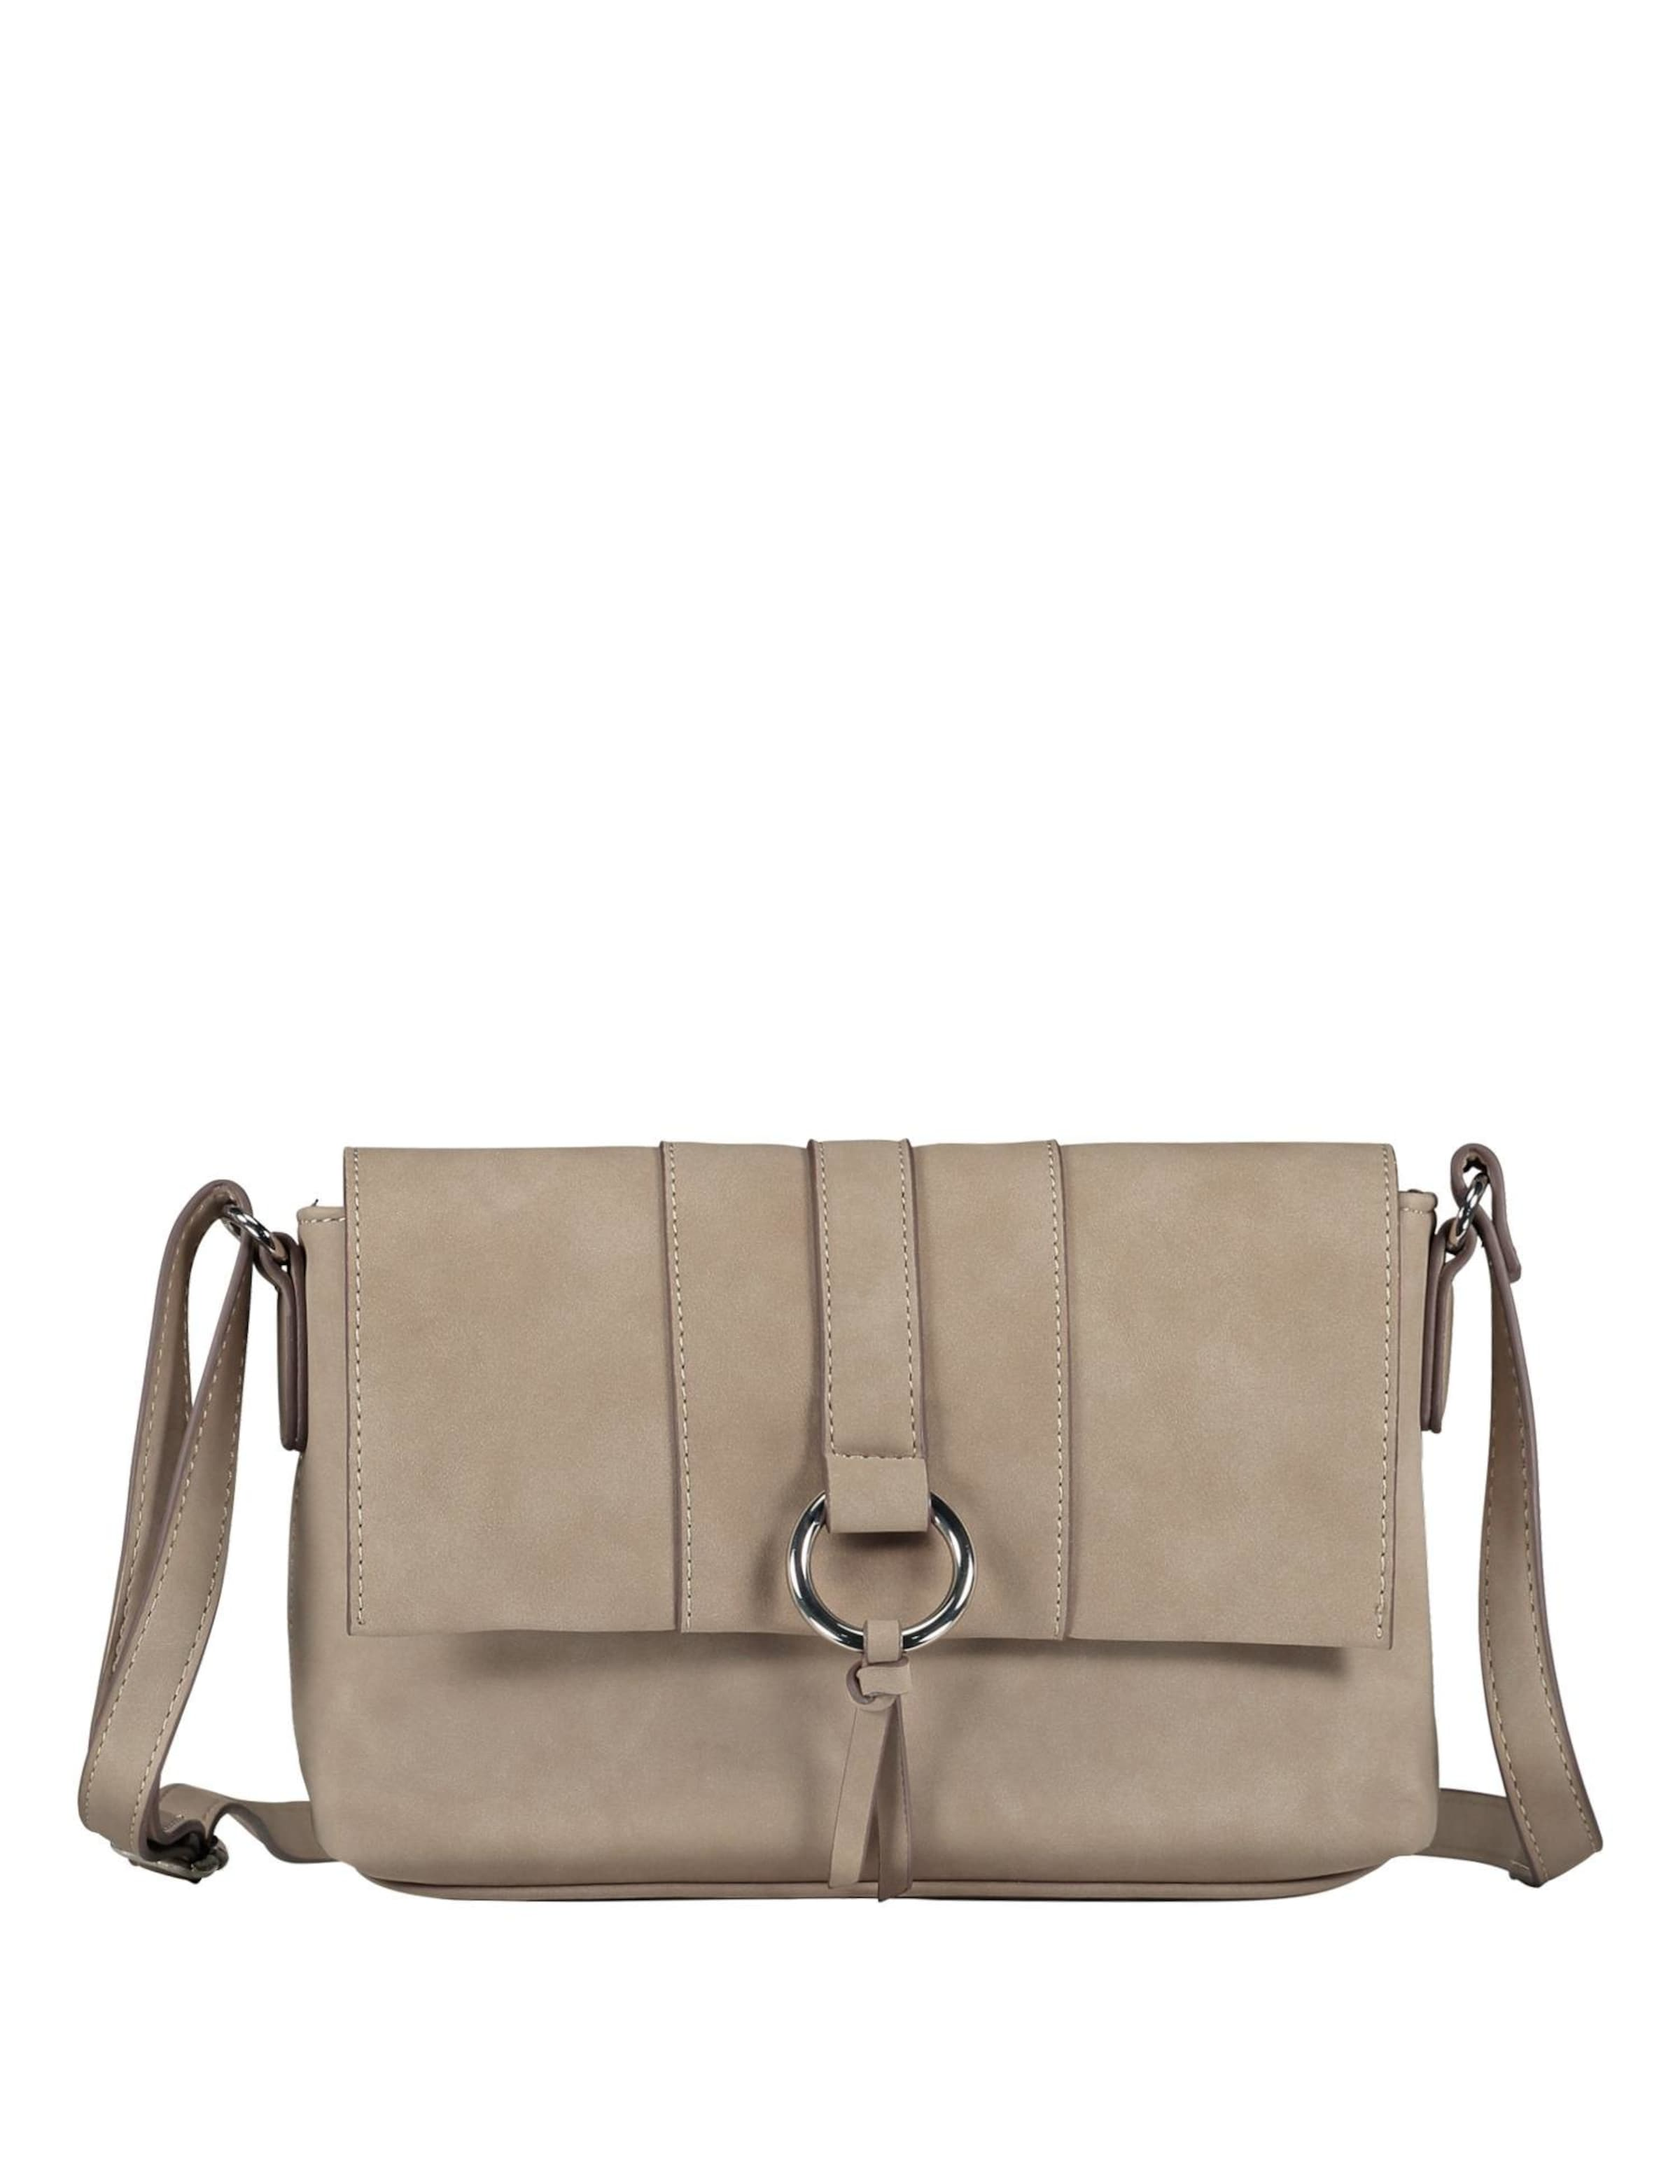 'illuminated' Schultertasche In Gerry Weber Taupe nOwPk08